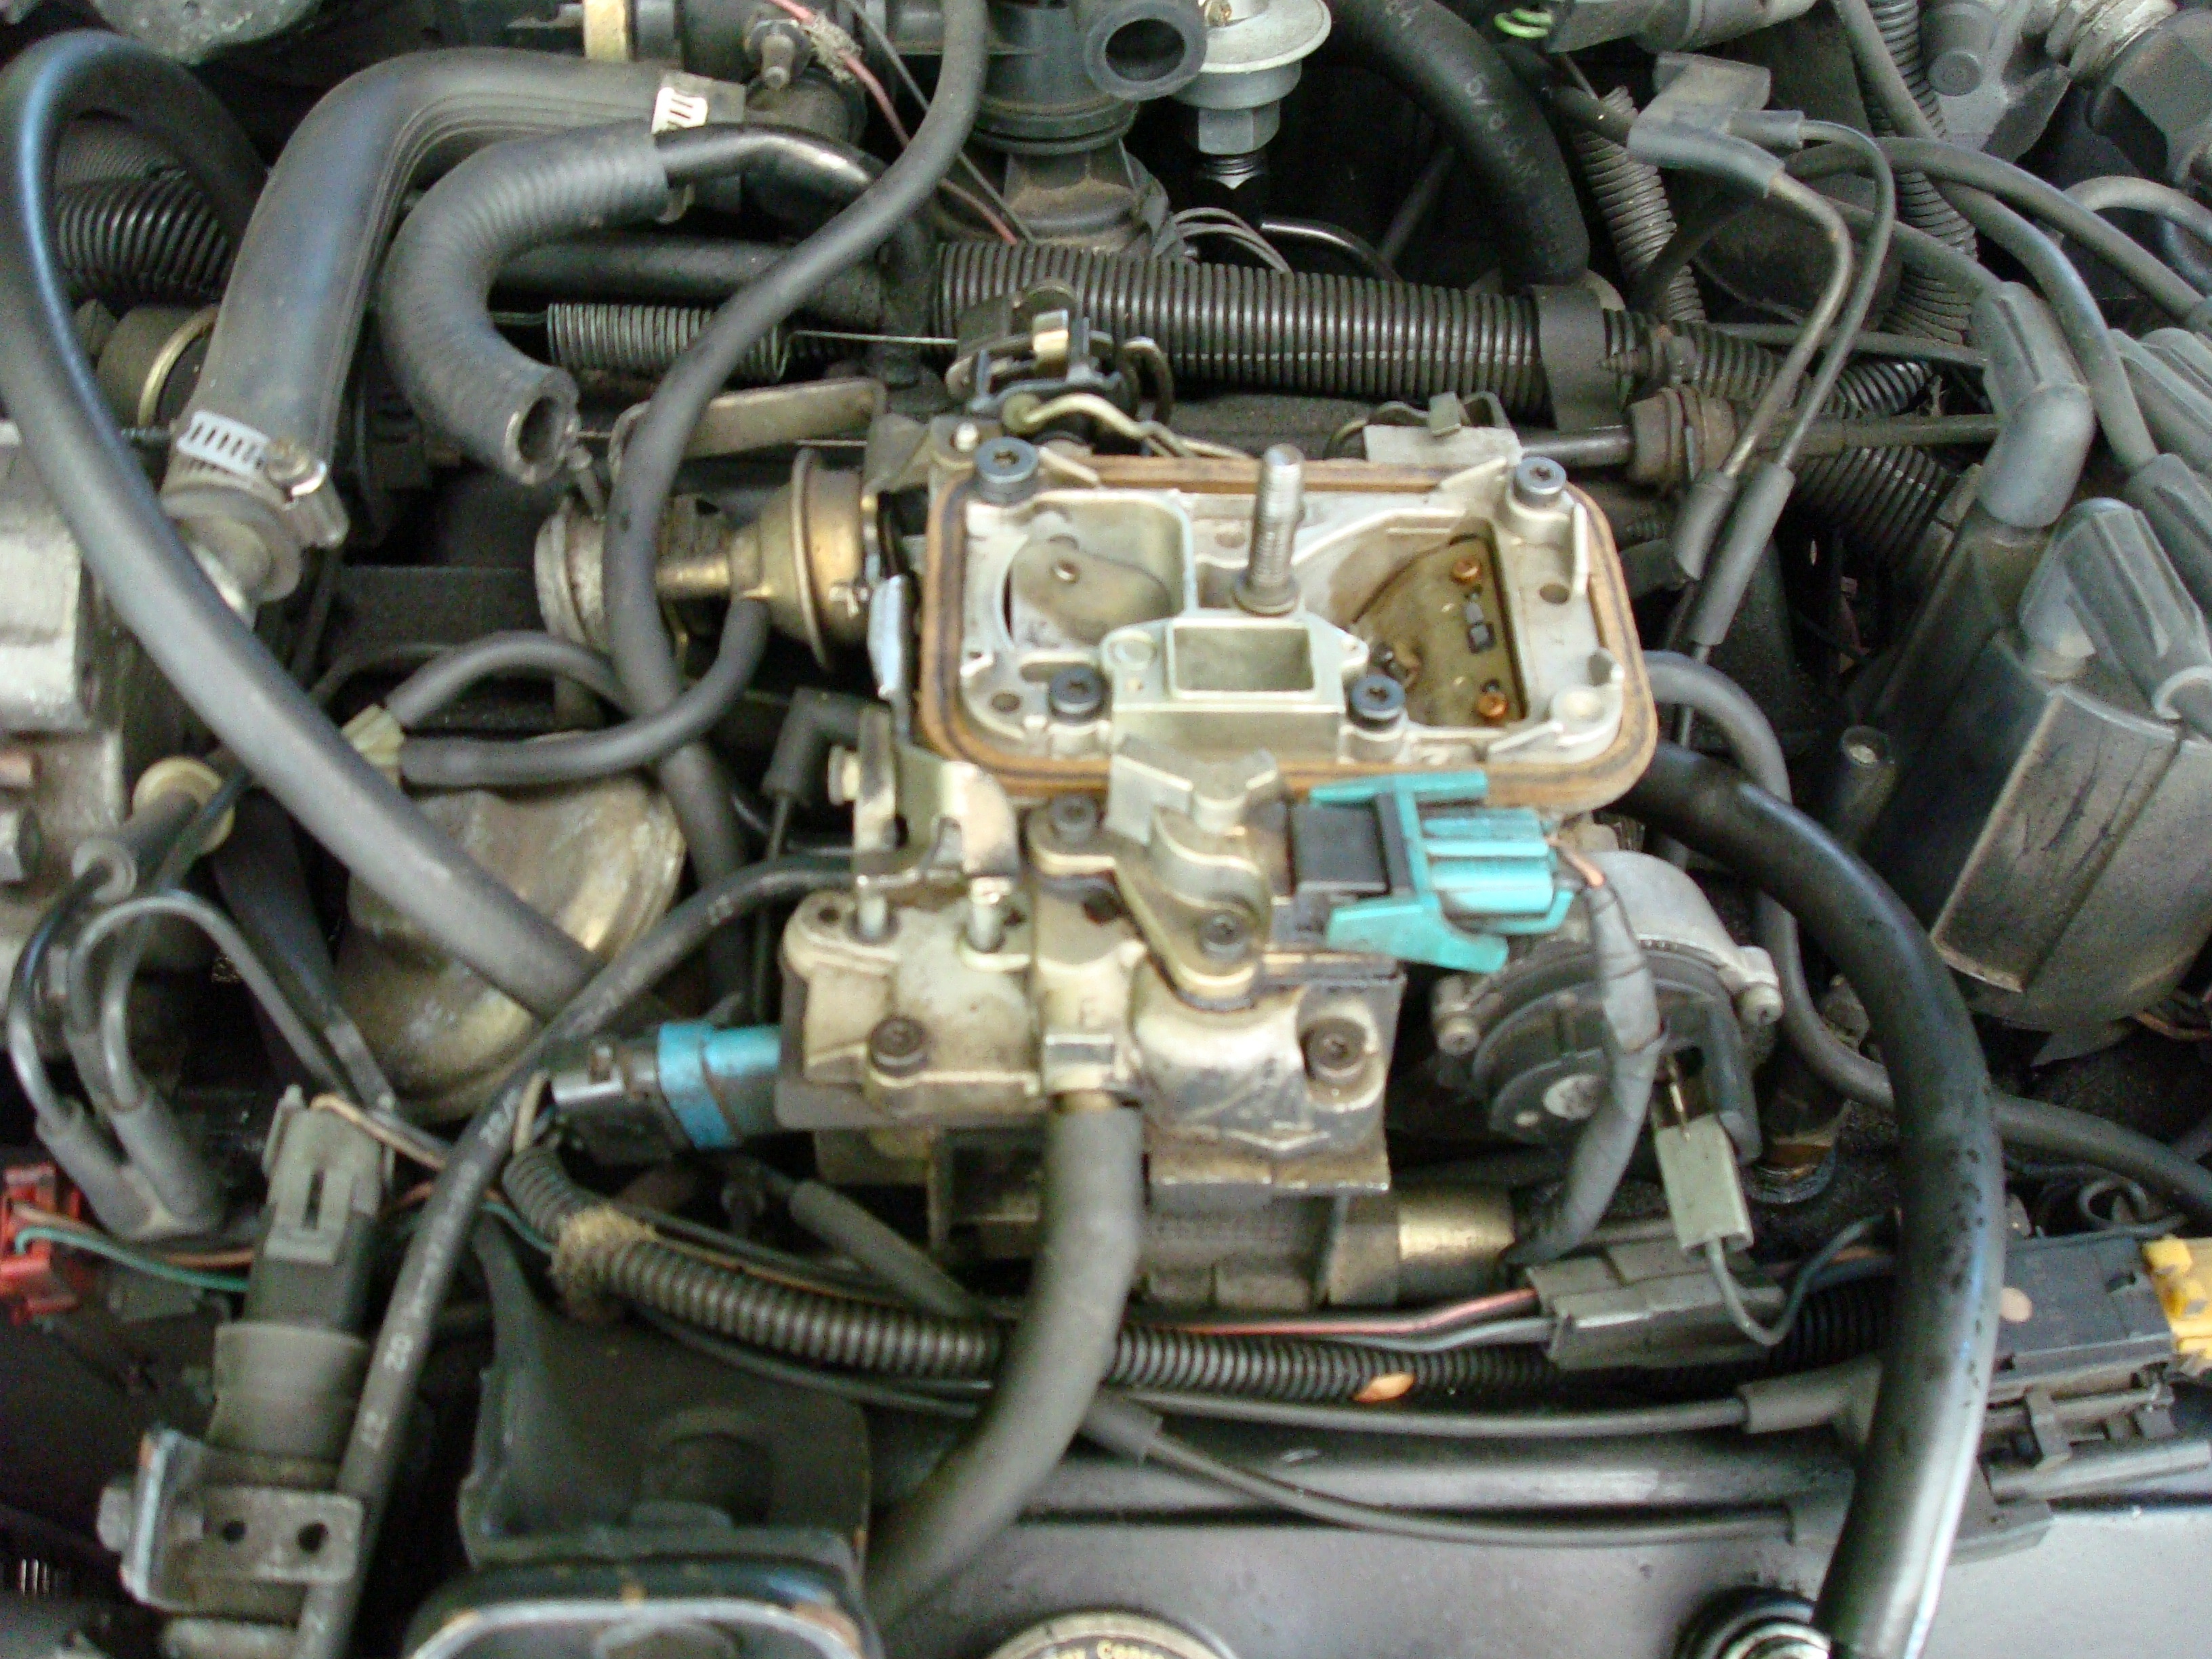 85 Chevrolet celebrity cold start carburetor problems ...